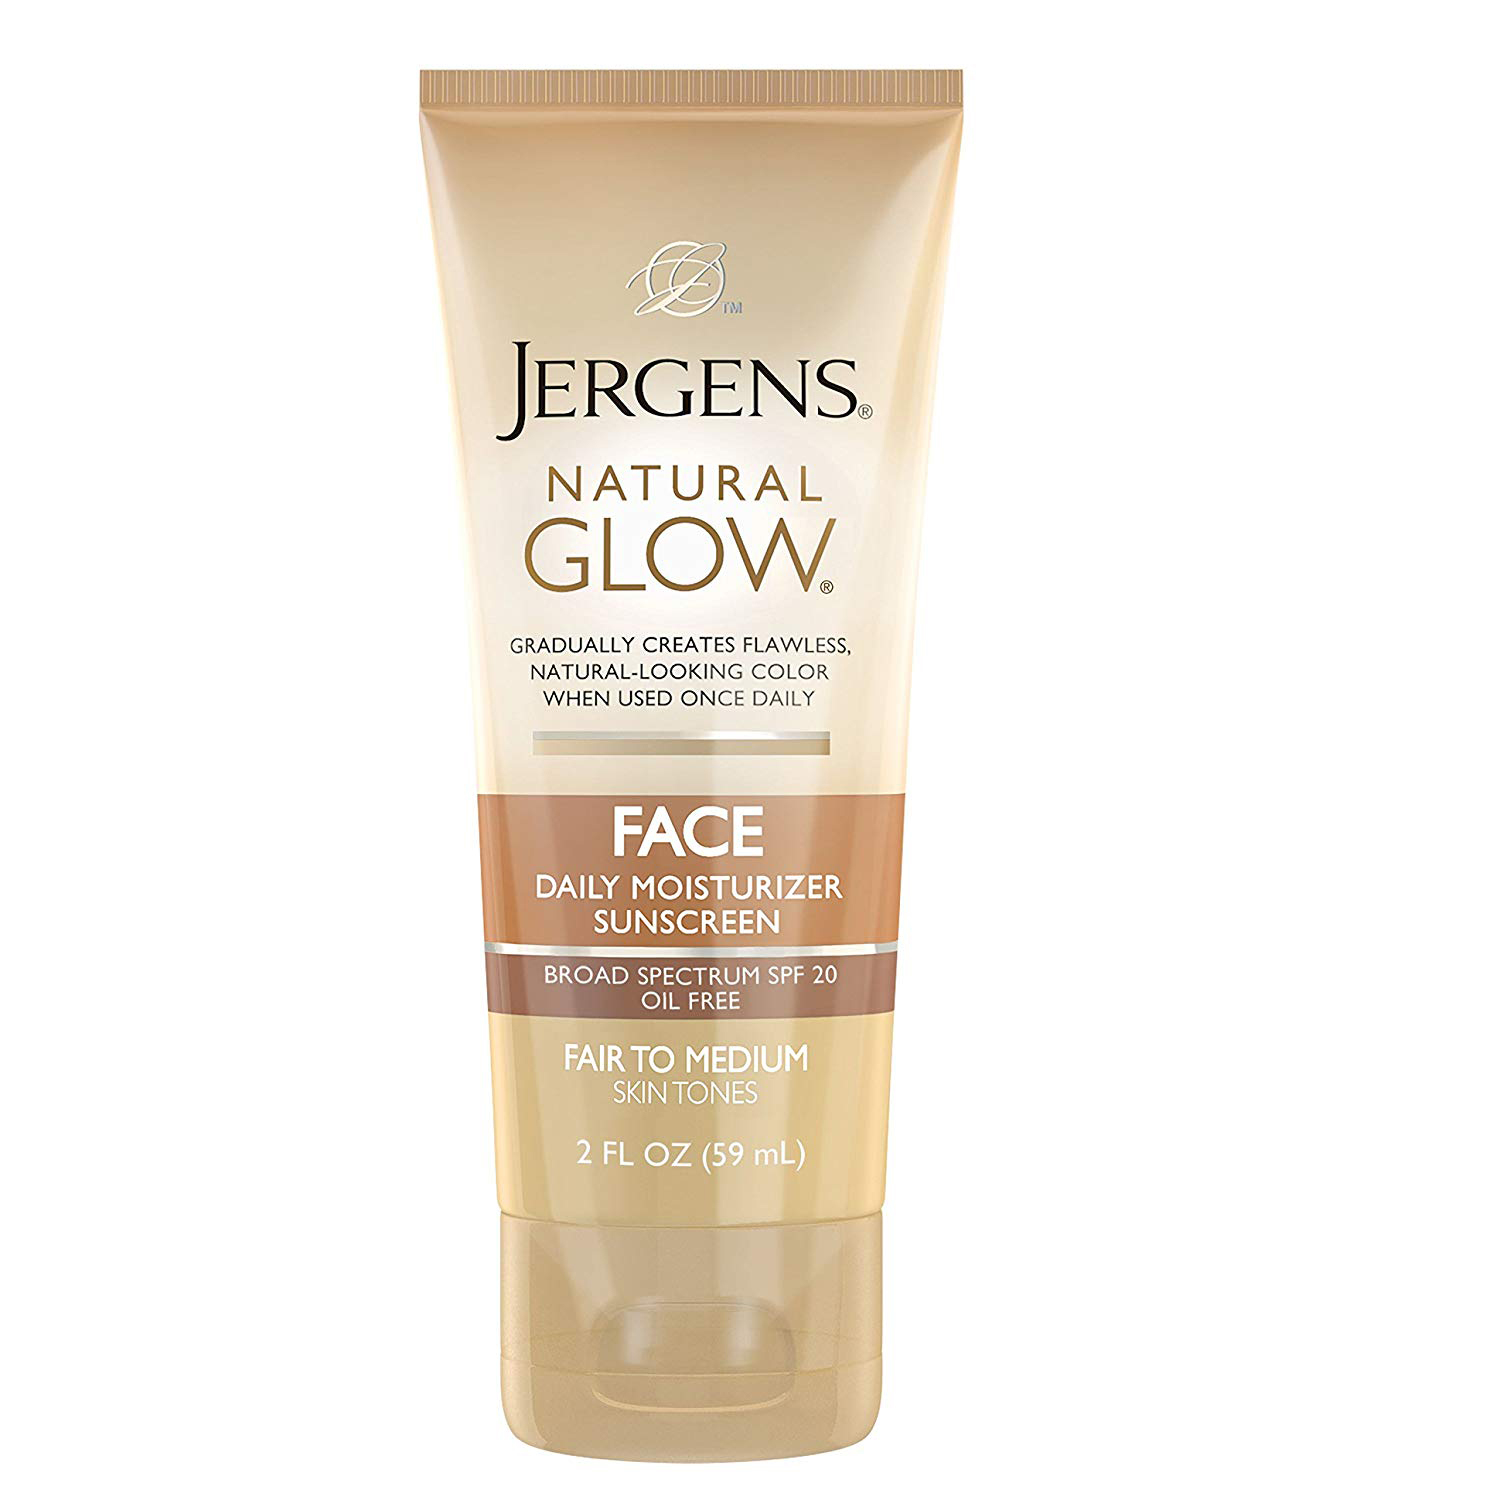 Jergens Natural Glow Oil-Free Daily Moisturizer for Face photo